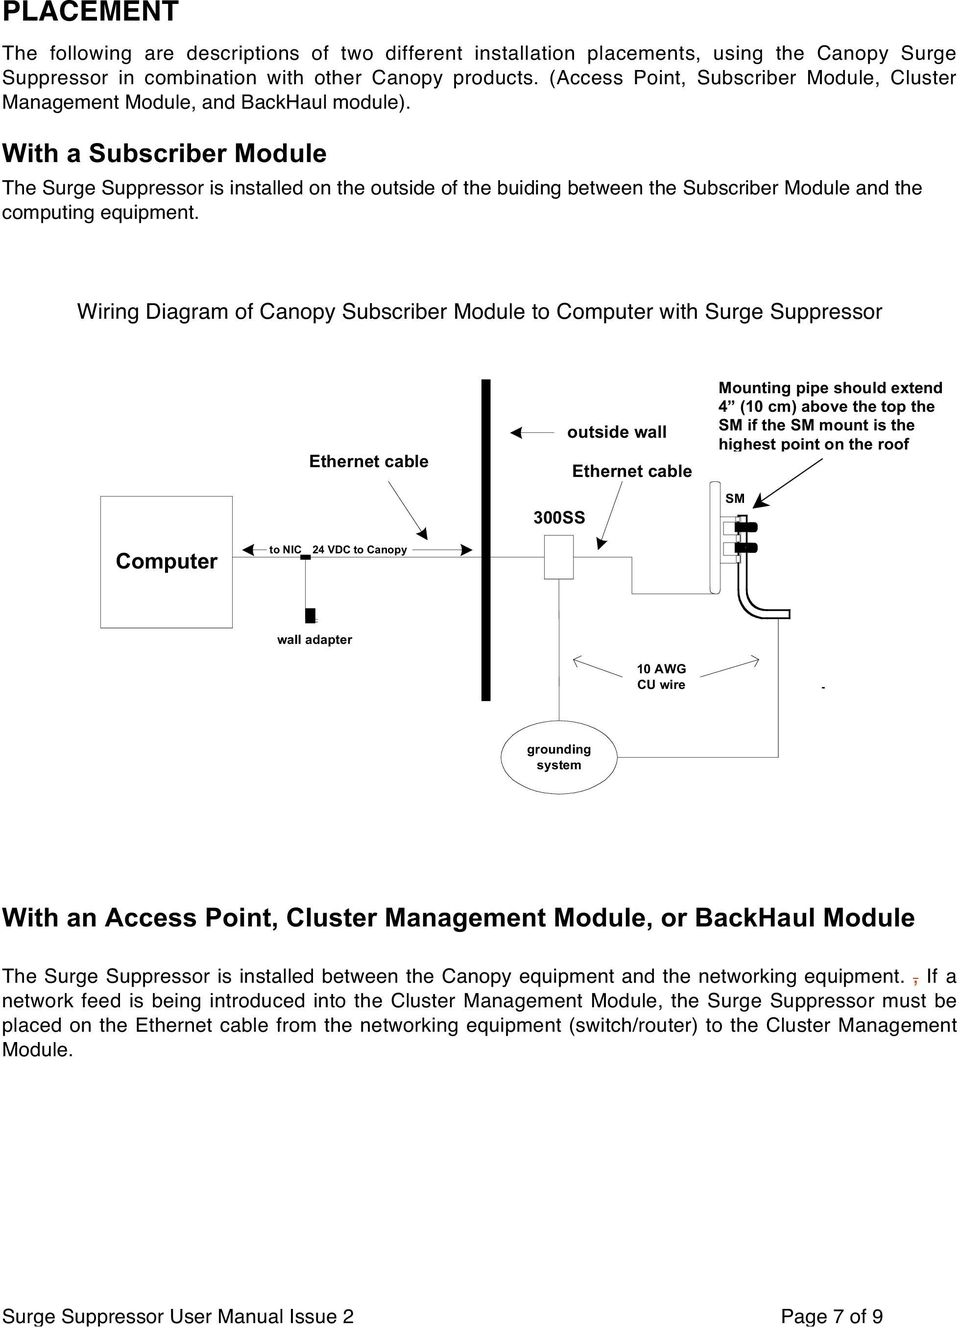 Canopy Surge User Manual Pdf Merco Wiring Diagrams With A Subscriber Module The Suppressor Is Installed On Outside Of Buiding Between